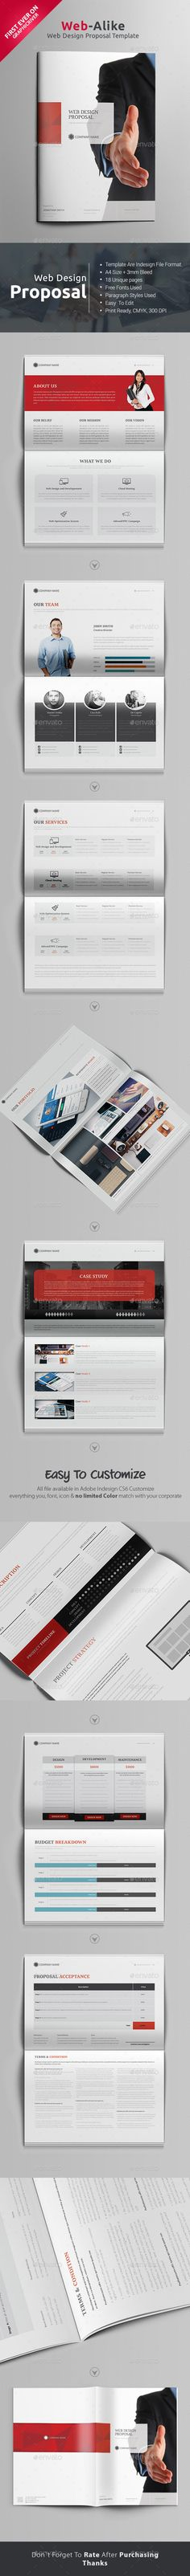 Official Proposal Template Business Project Proposal Template  Pinterest  Proposal Templates .